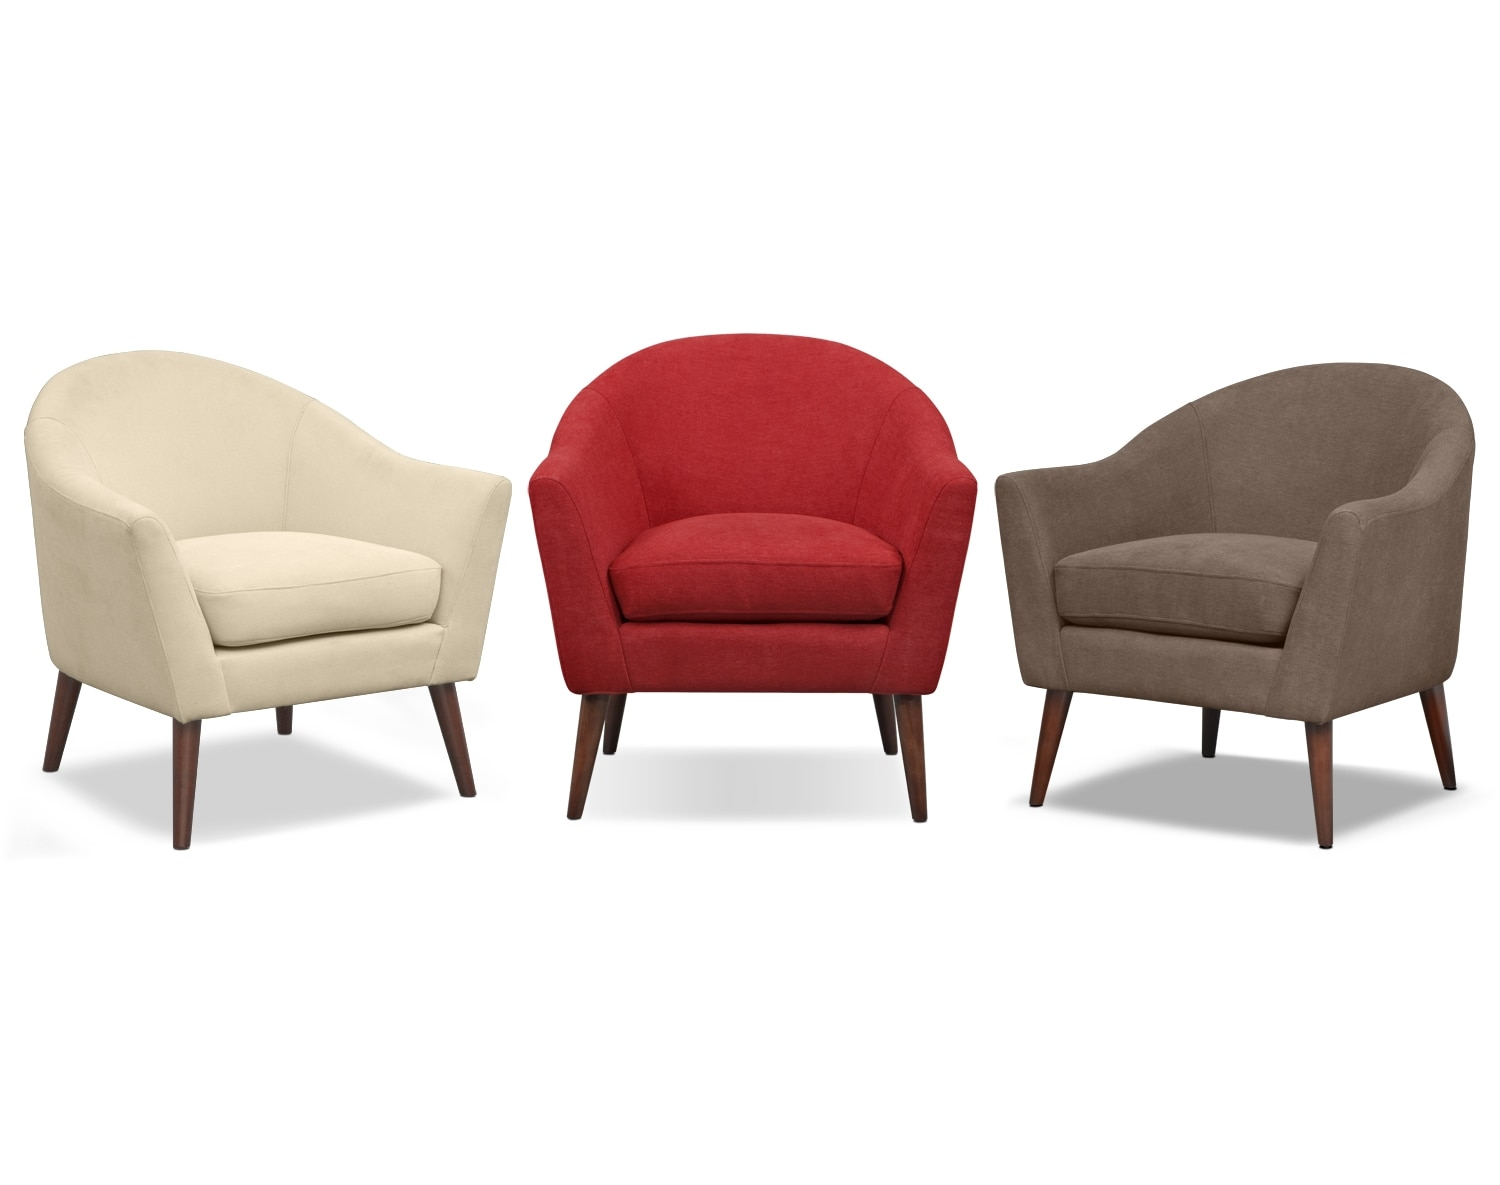 The Rosa Accent Chair Collection